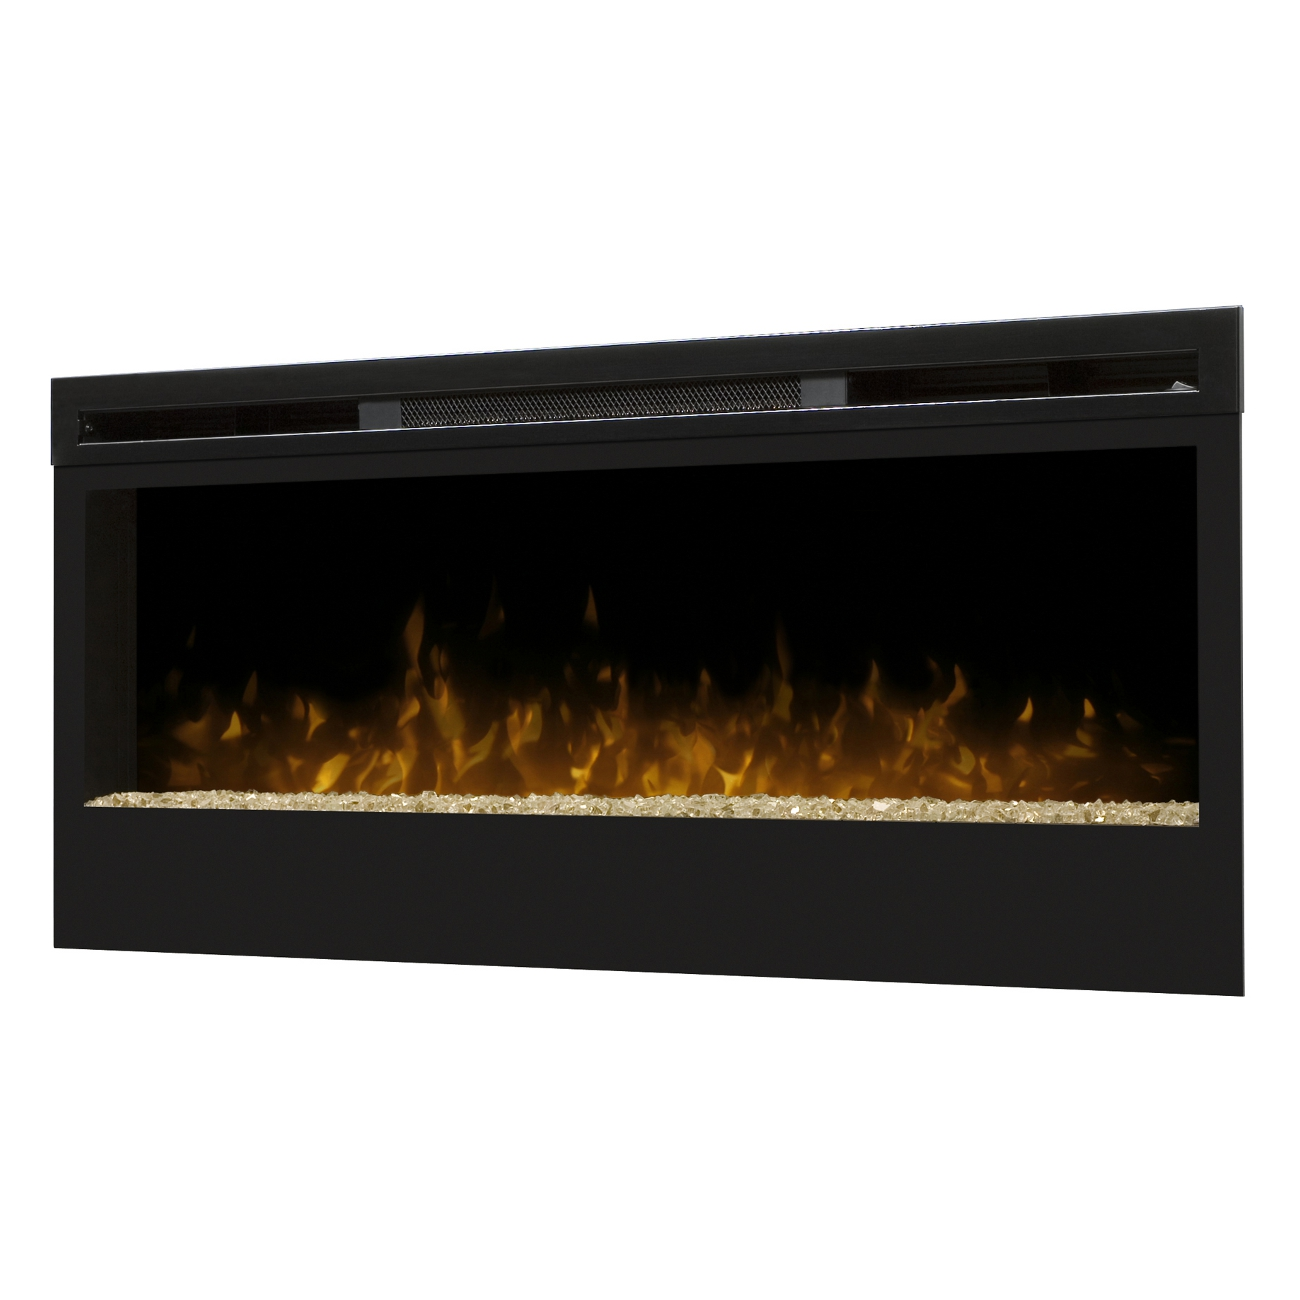 Dimplex 50 Synergy Electric Fireplace Insert Wall Mount Blf50 Electric Fireplaces